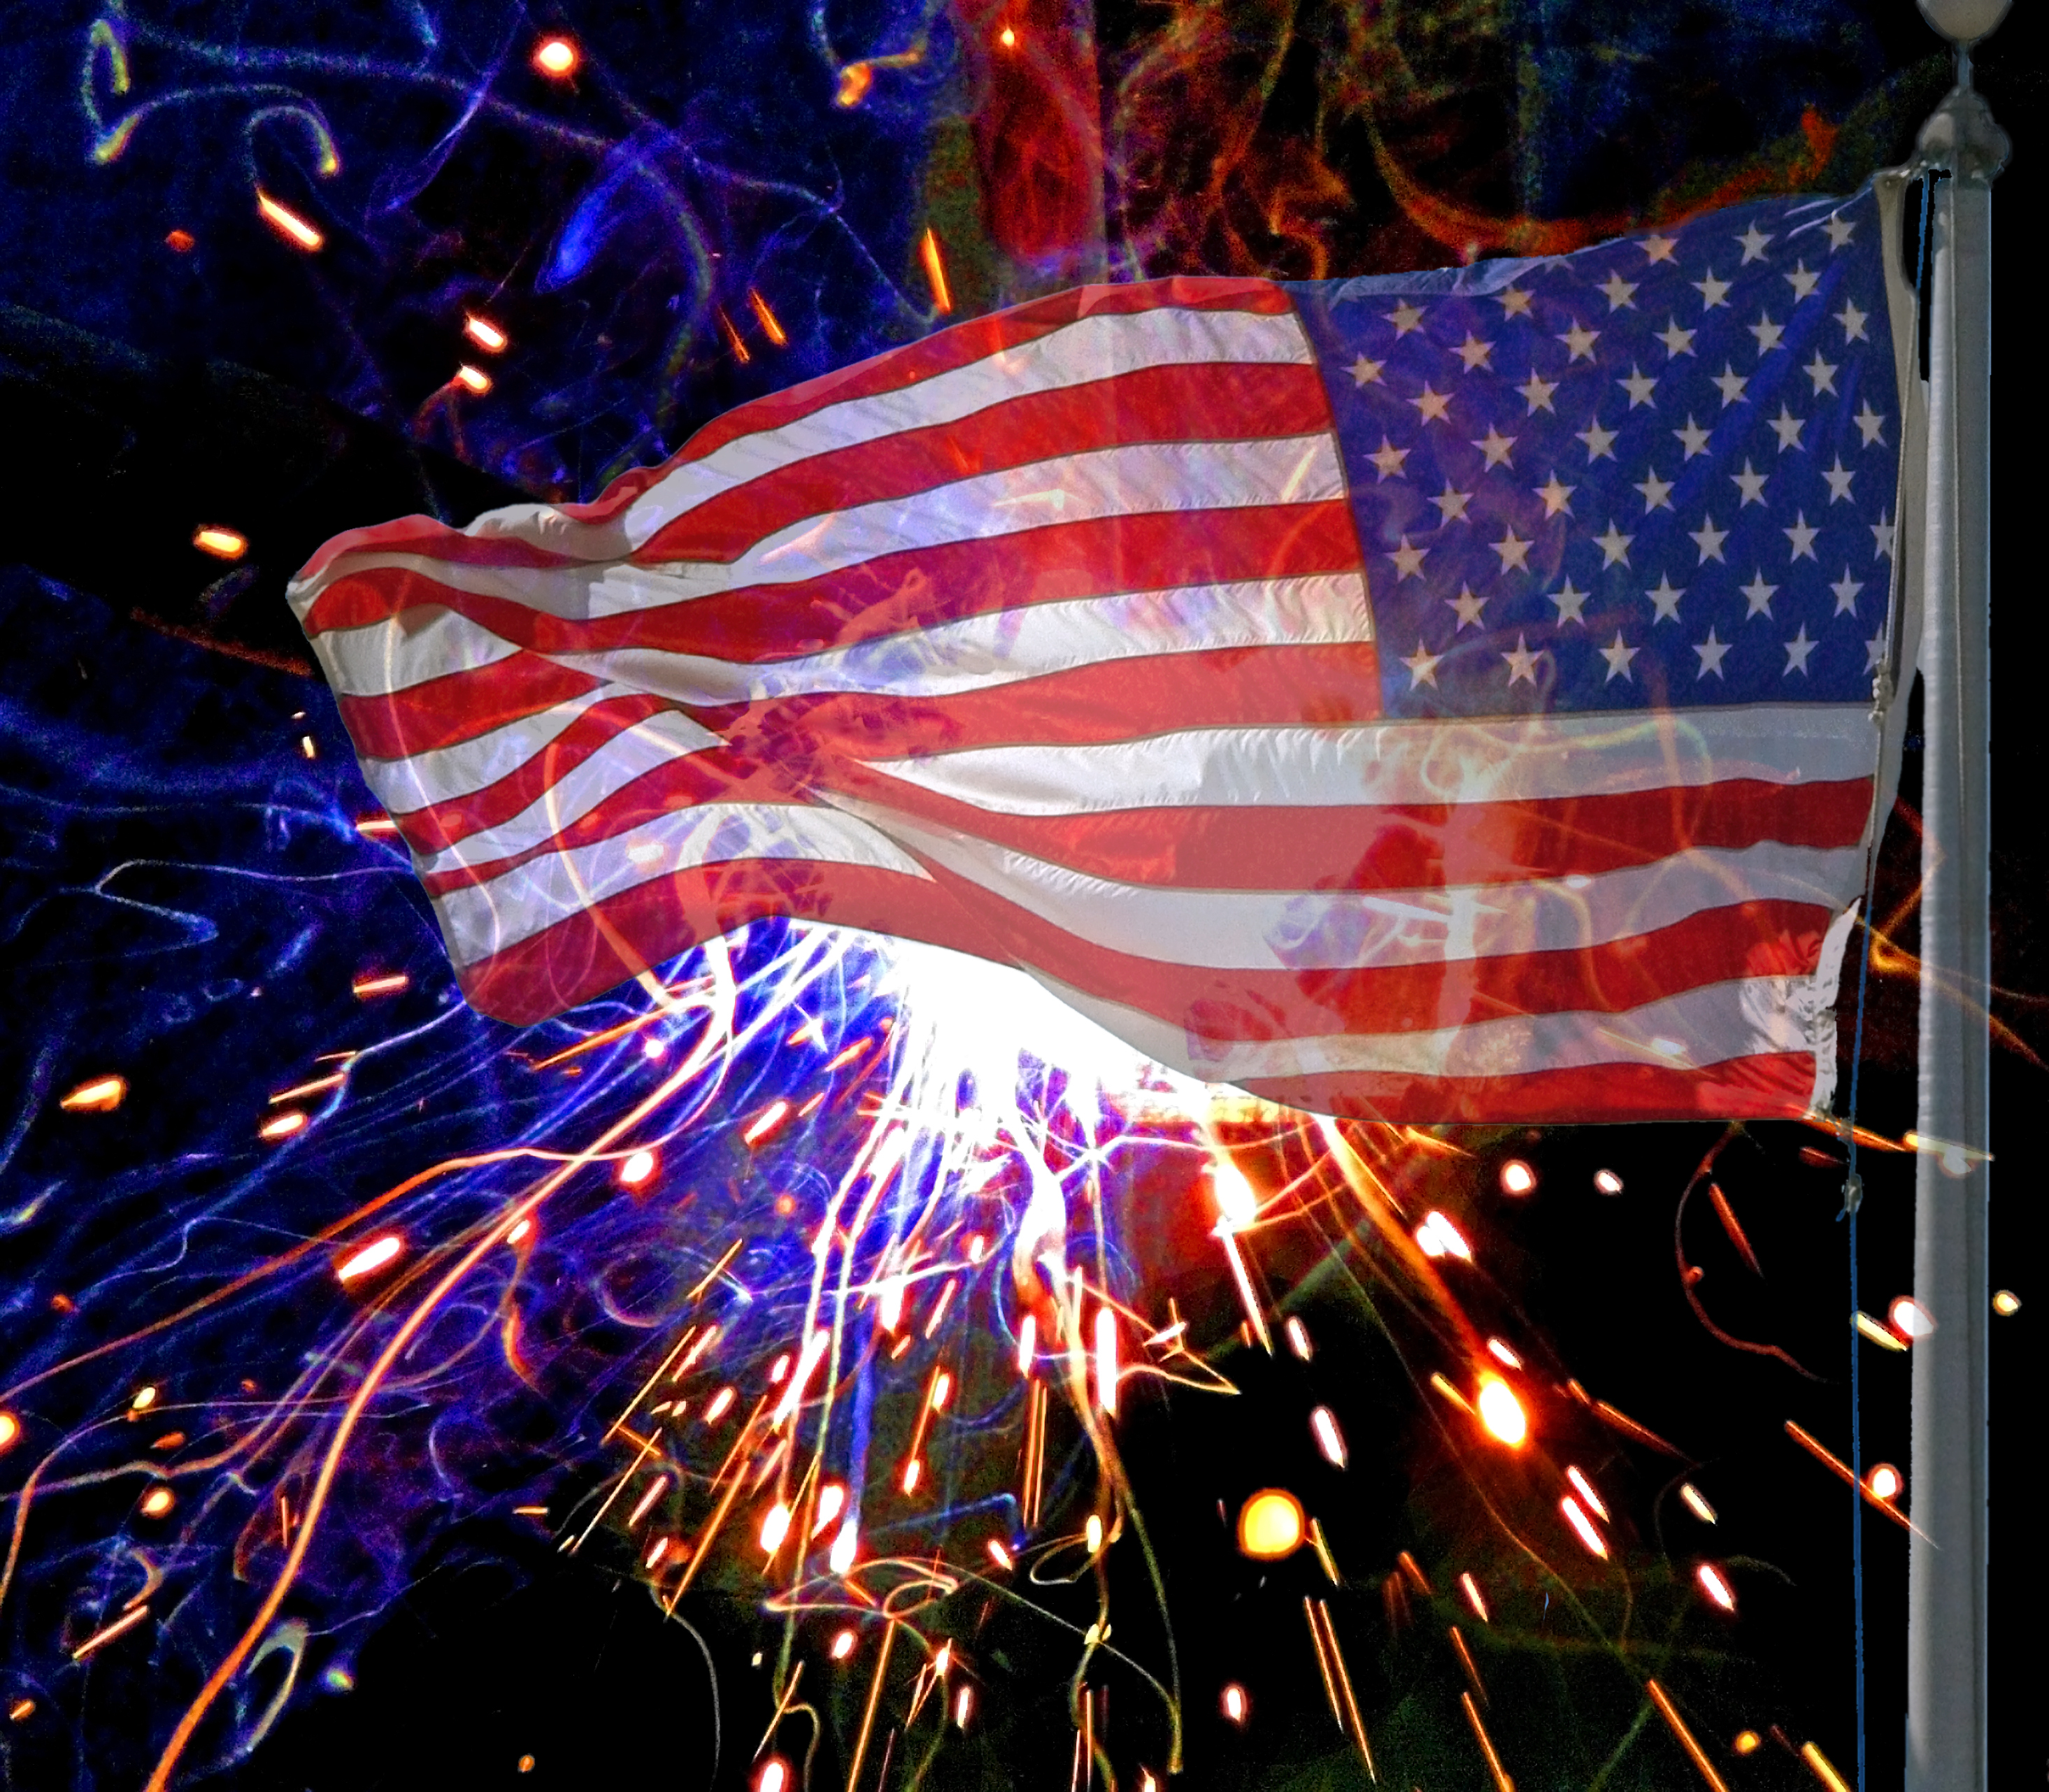 Photo based artistic rendering of the Holiday July 4th.